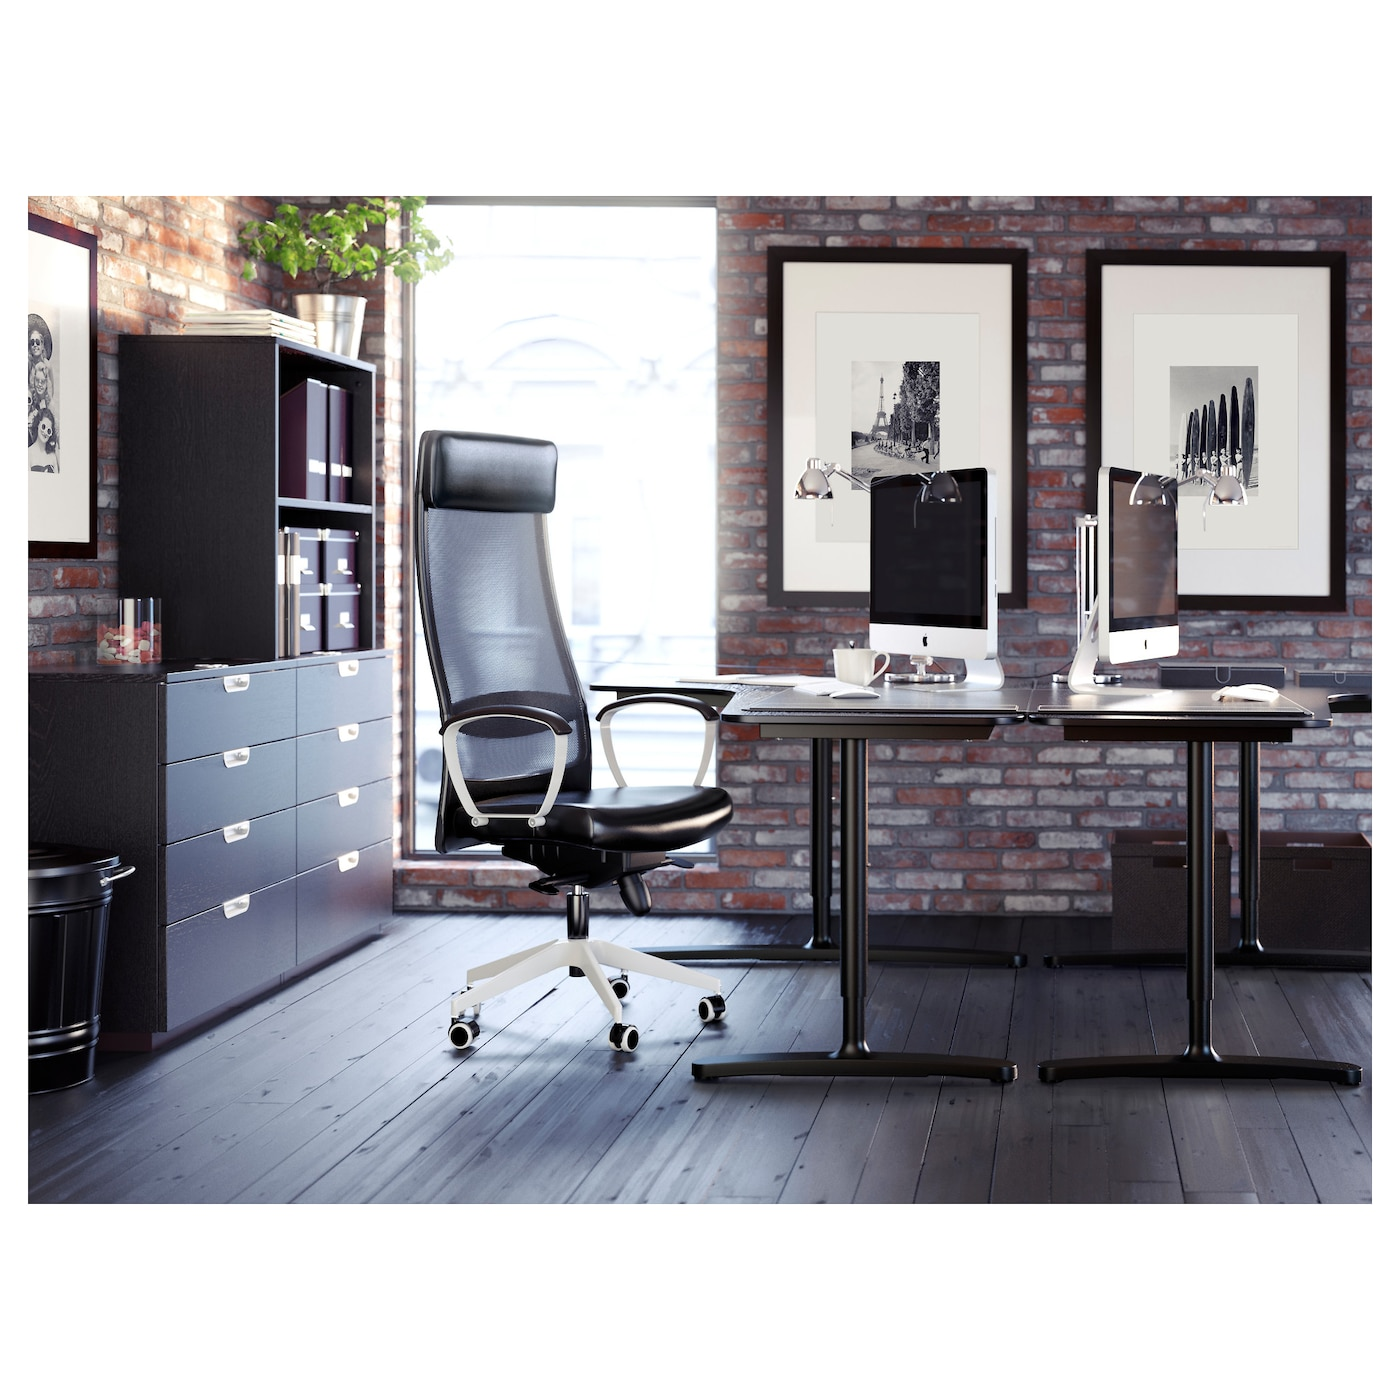 bekant bureau d 39 angle gch brun noir noir 160 x 110 cm ikea. Black Bedroom Furniture Sets. Home Design Ideas